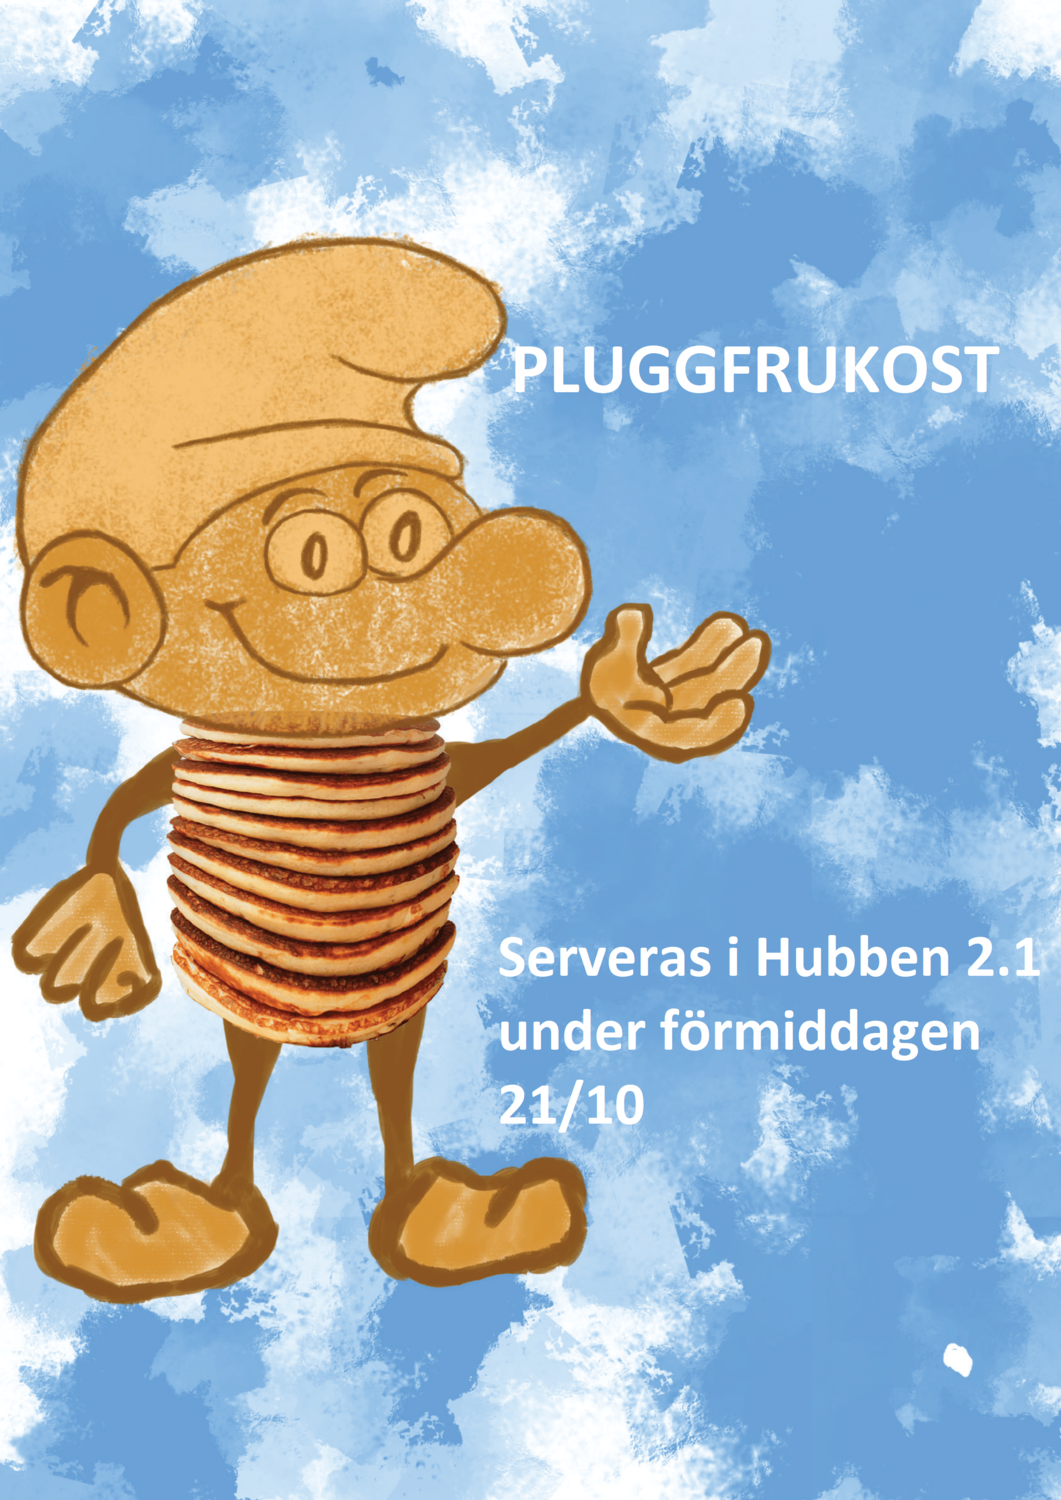 Pluggfrukost-plain-compressed-1